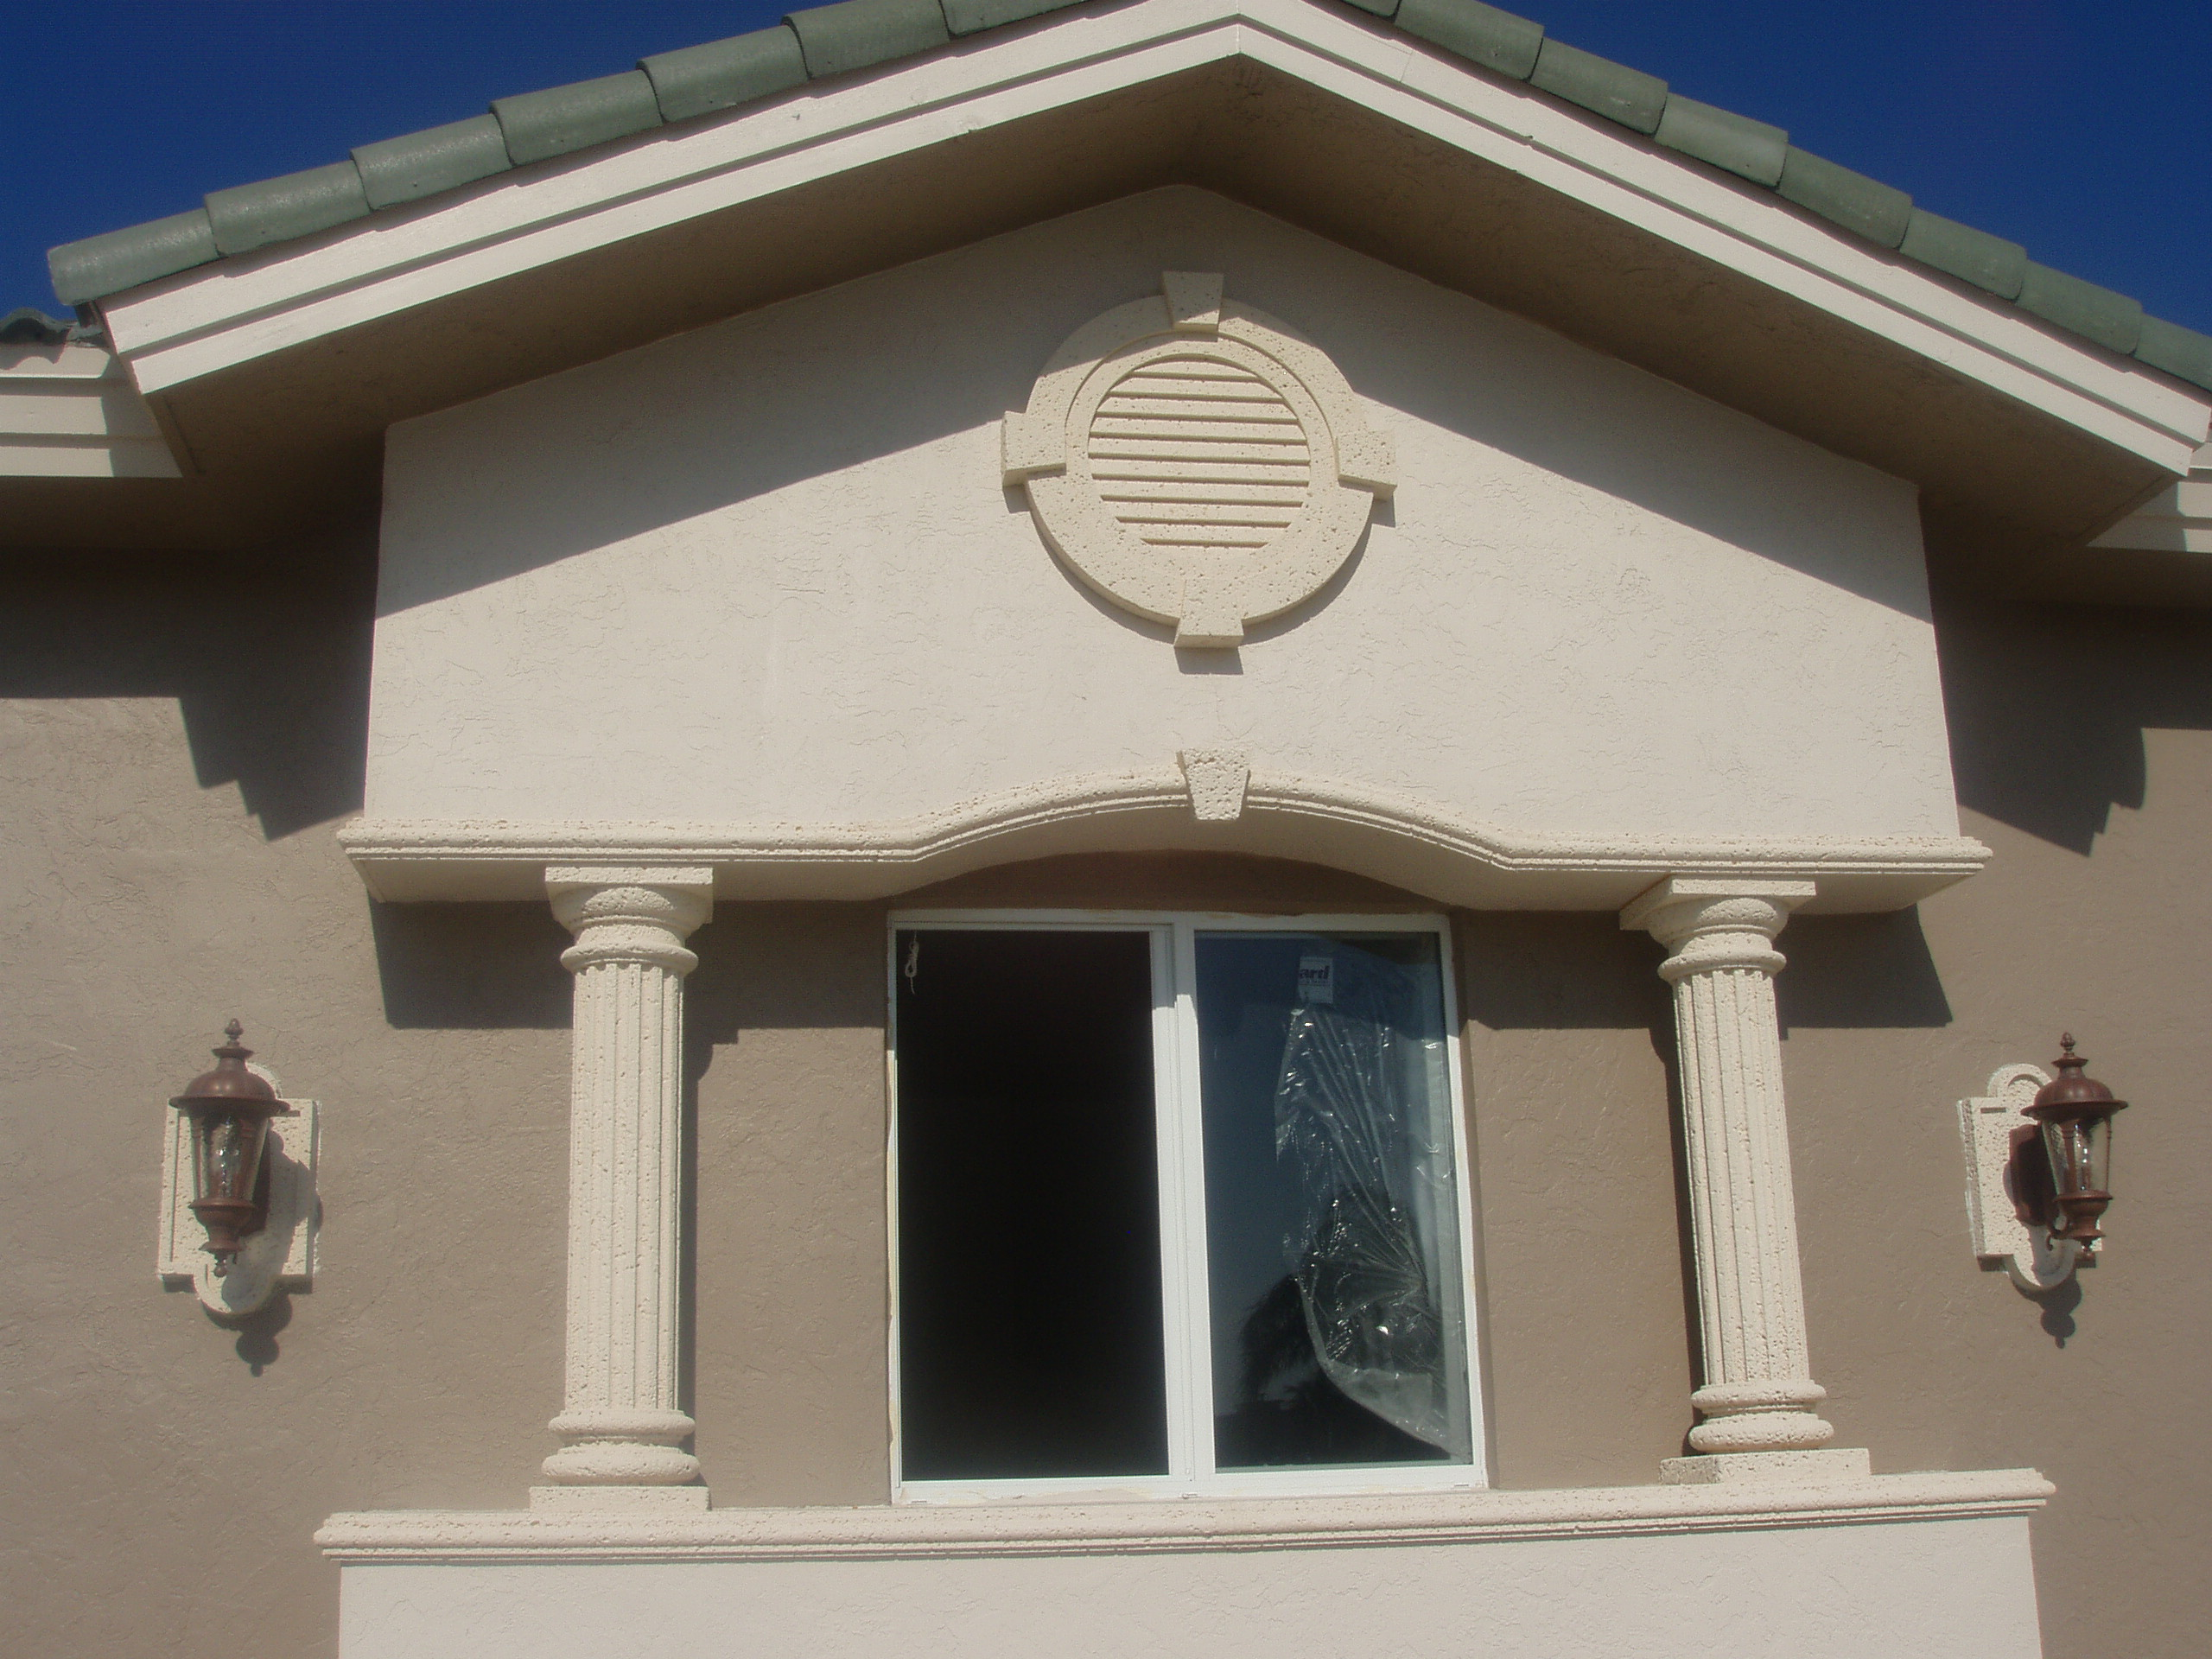 Exterior medallions for stucco architectural foam shapes house exterior decorations imanada for Architectural medallions exterior